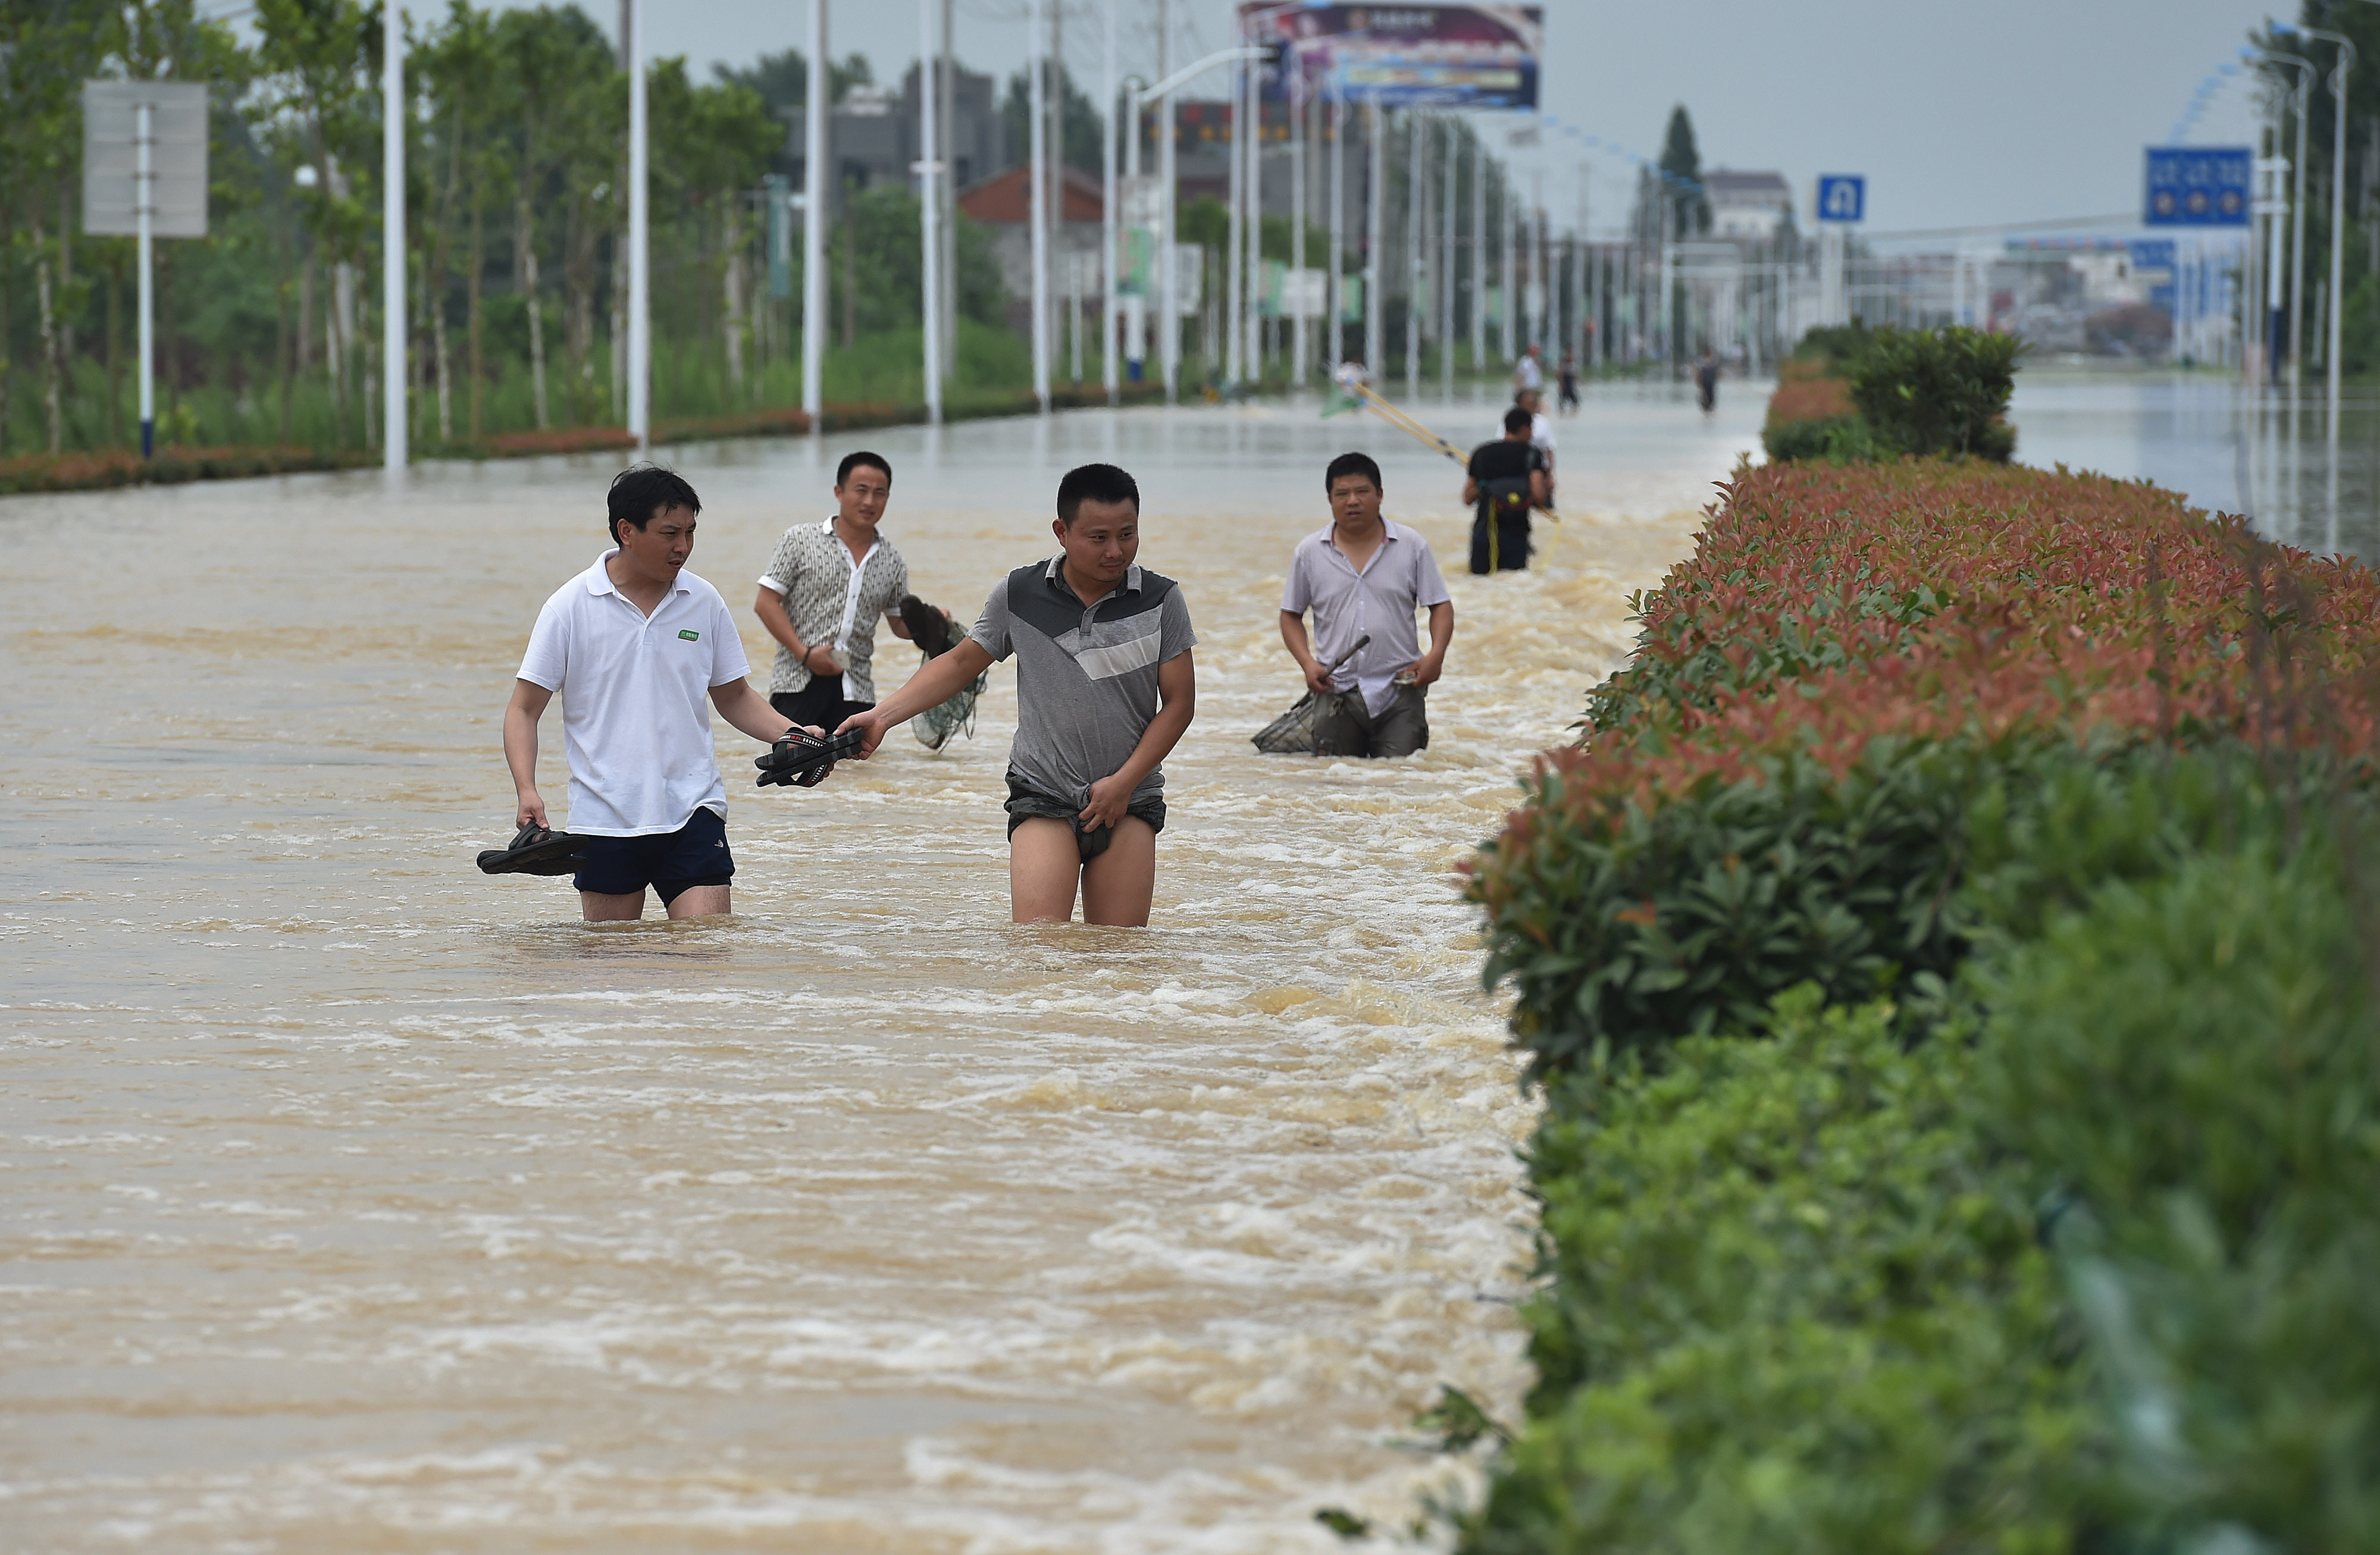 Residents walk in the flood caused by a rainstorm in Shucheng county, China's Anhui province, on July 3, 2016